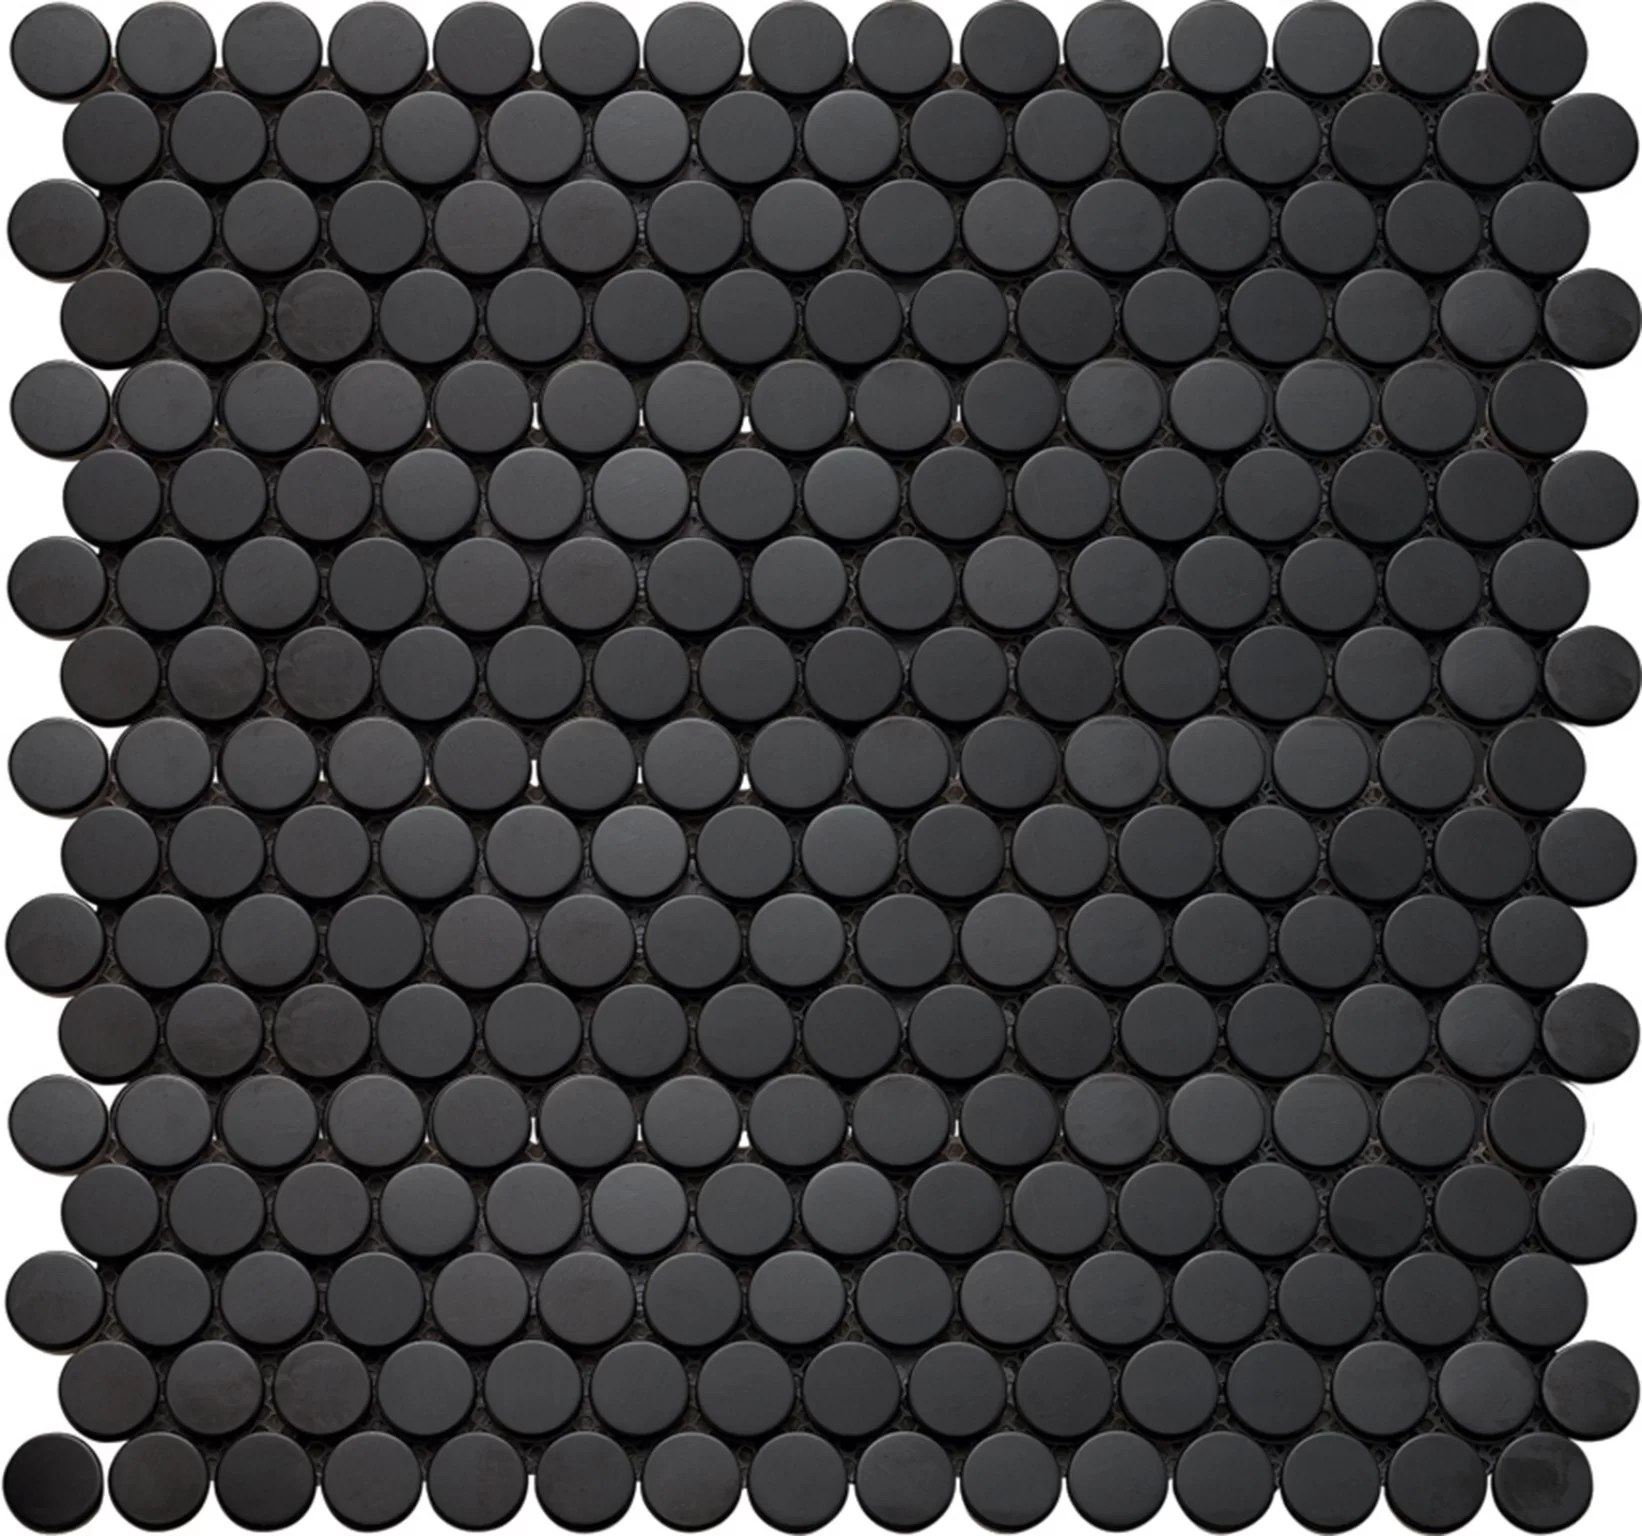 inox penny round glass mosaic tile in black